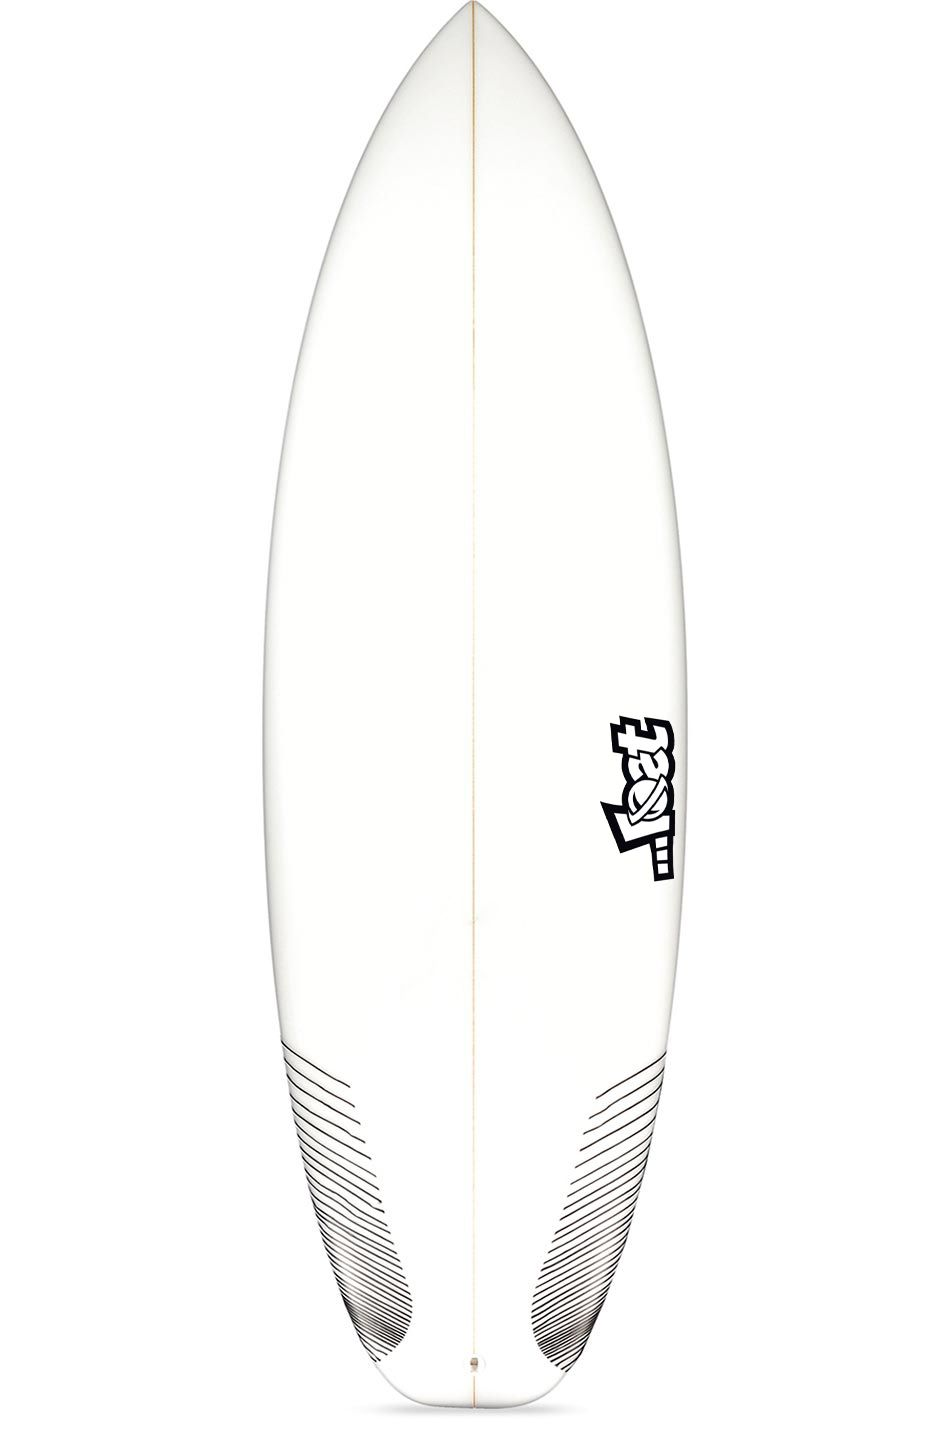 Prancha Surf Lost 6'0 PUDDLE JUMPER HP Squash Tail - White FCS II Multisystem 6ft0